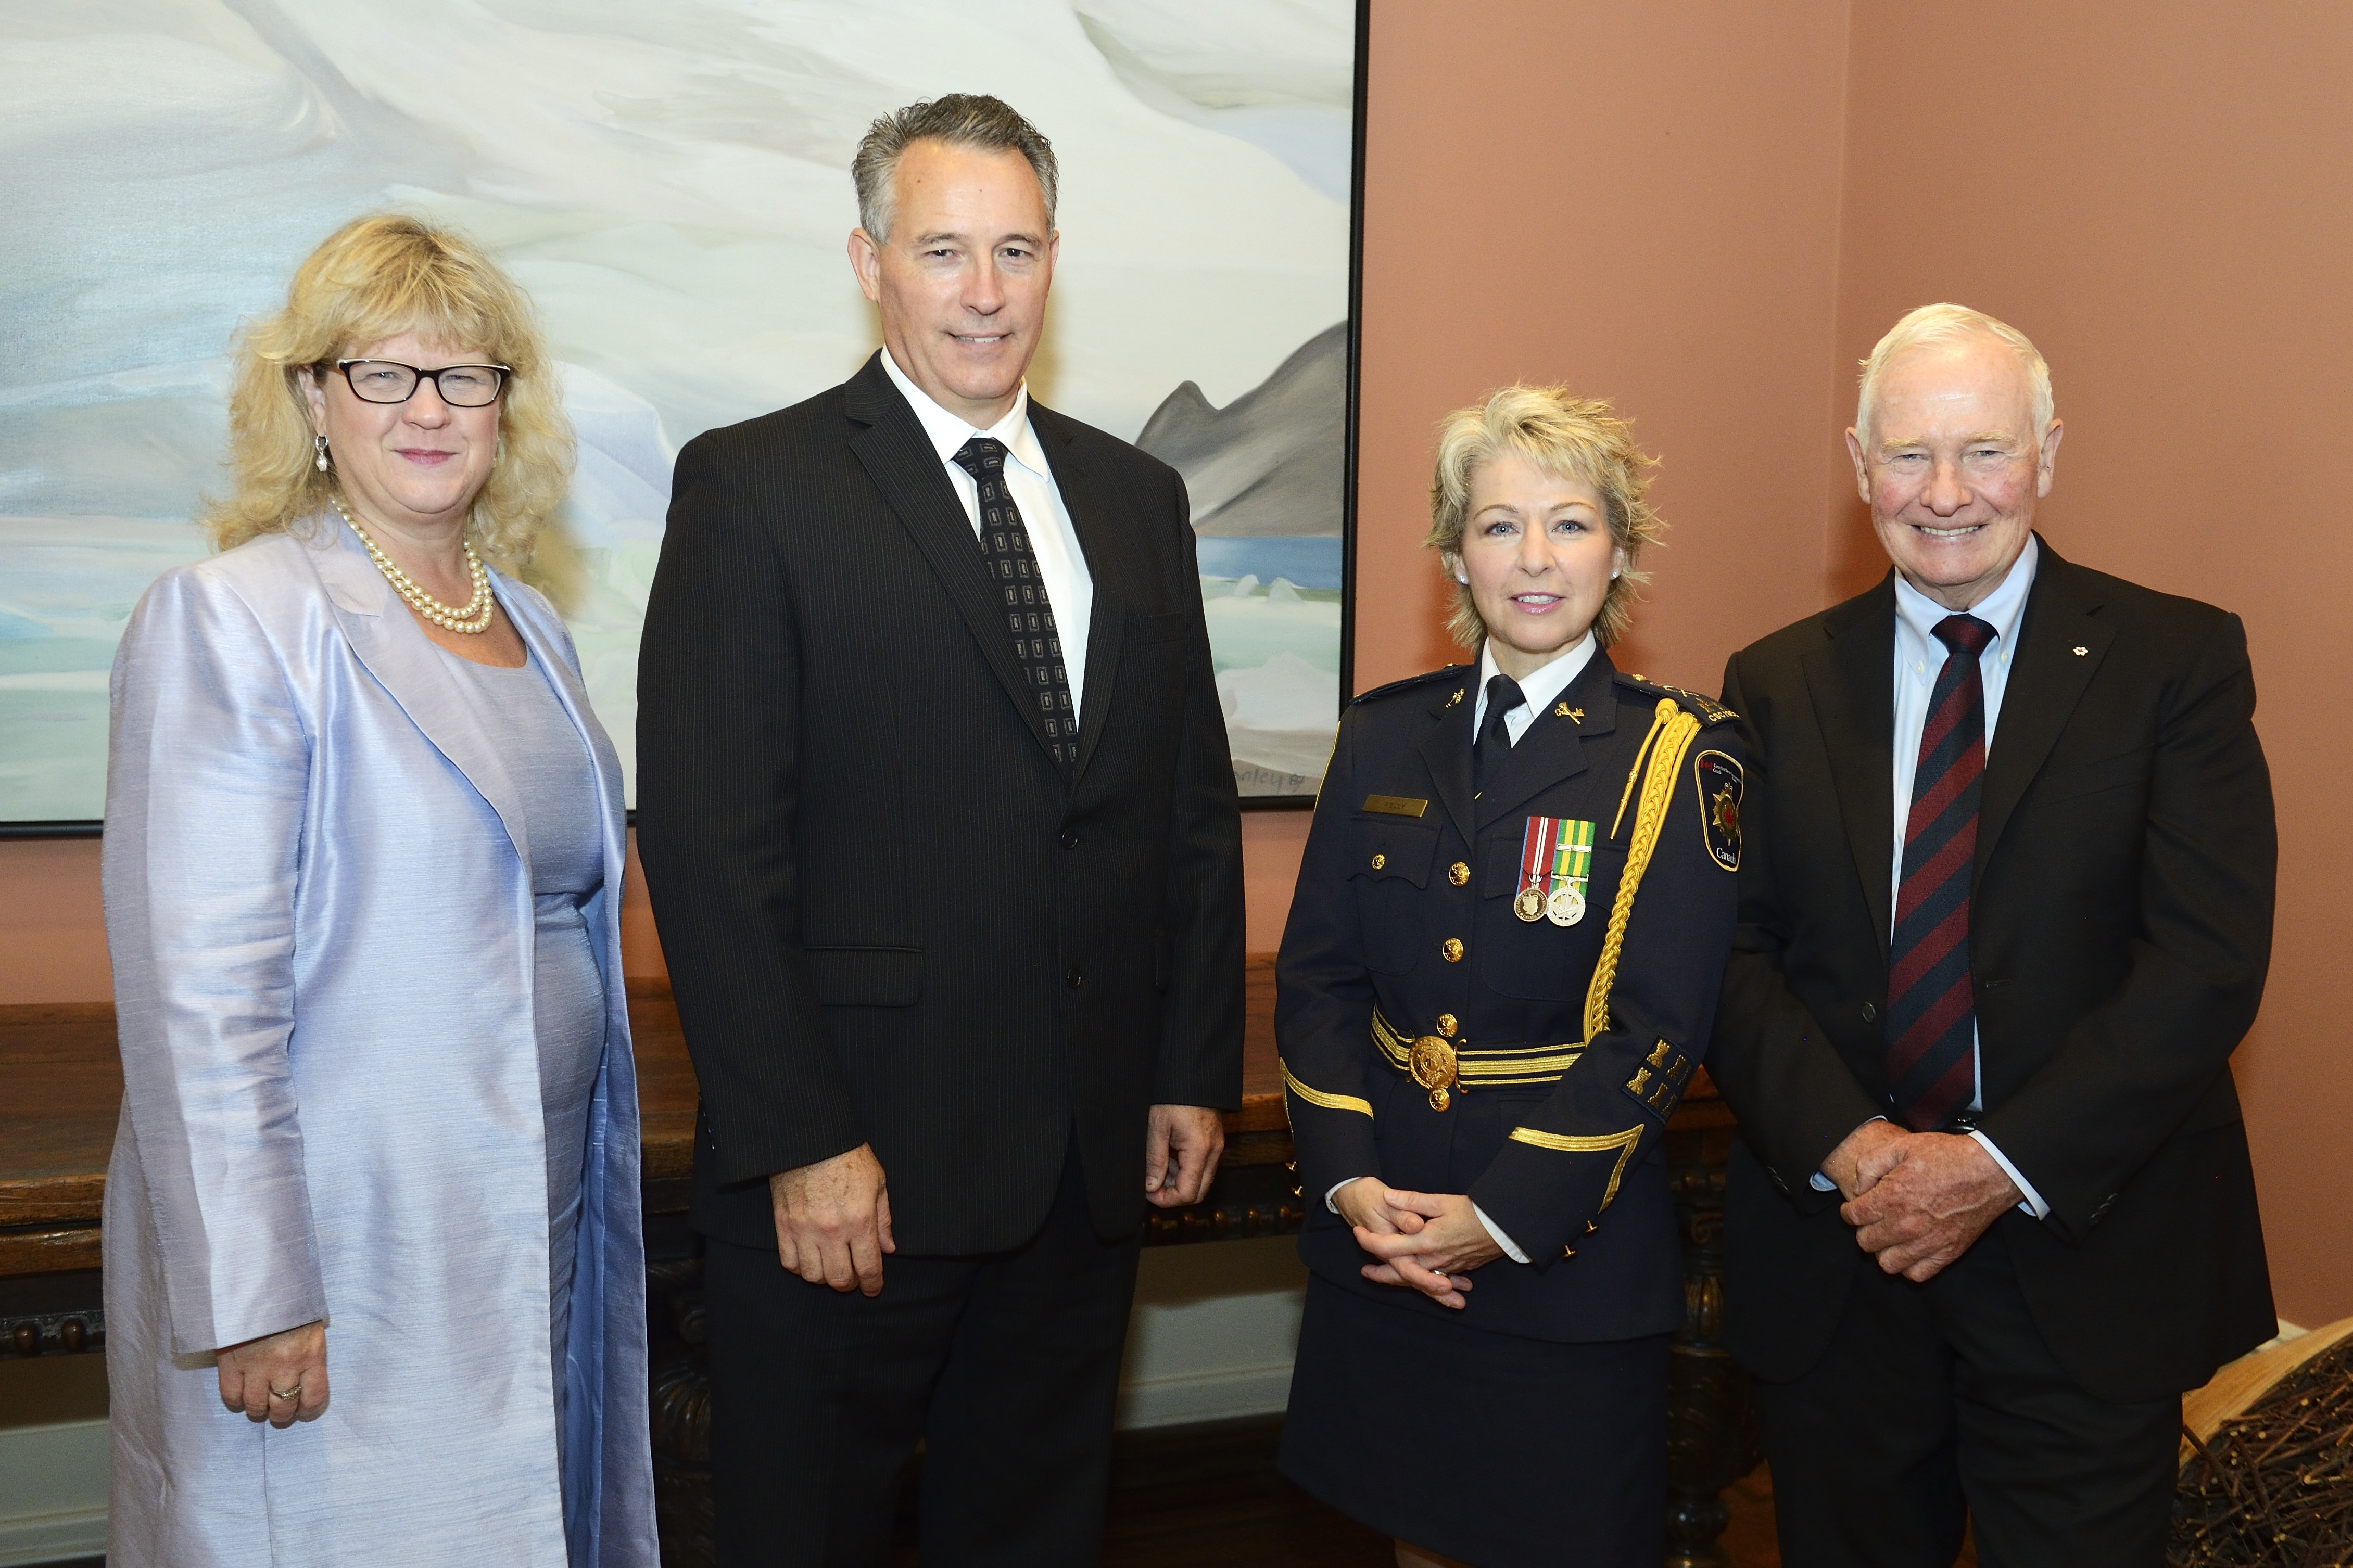 A photo of Dr. Jeremy Mills standing with Janice Charette, Clerk of the Privy Council, His Excellency the Right Honourable David Johnston, Governor General of Canada, and Senior Deputy Commissioner Anne Kelly.